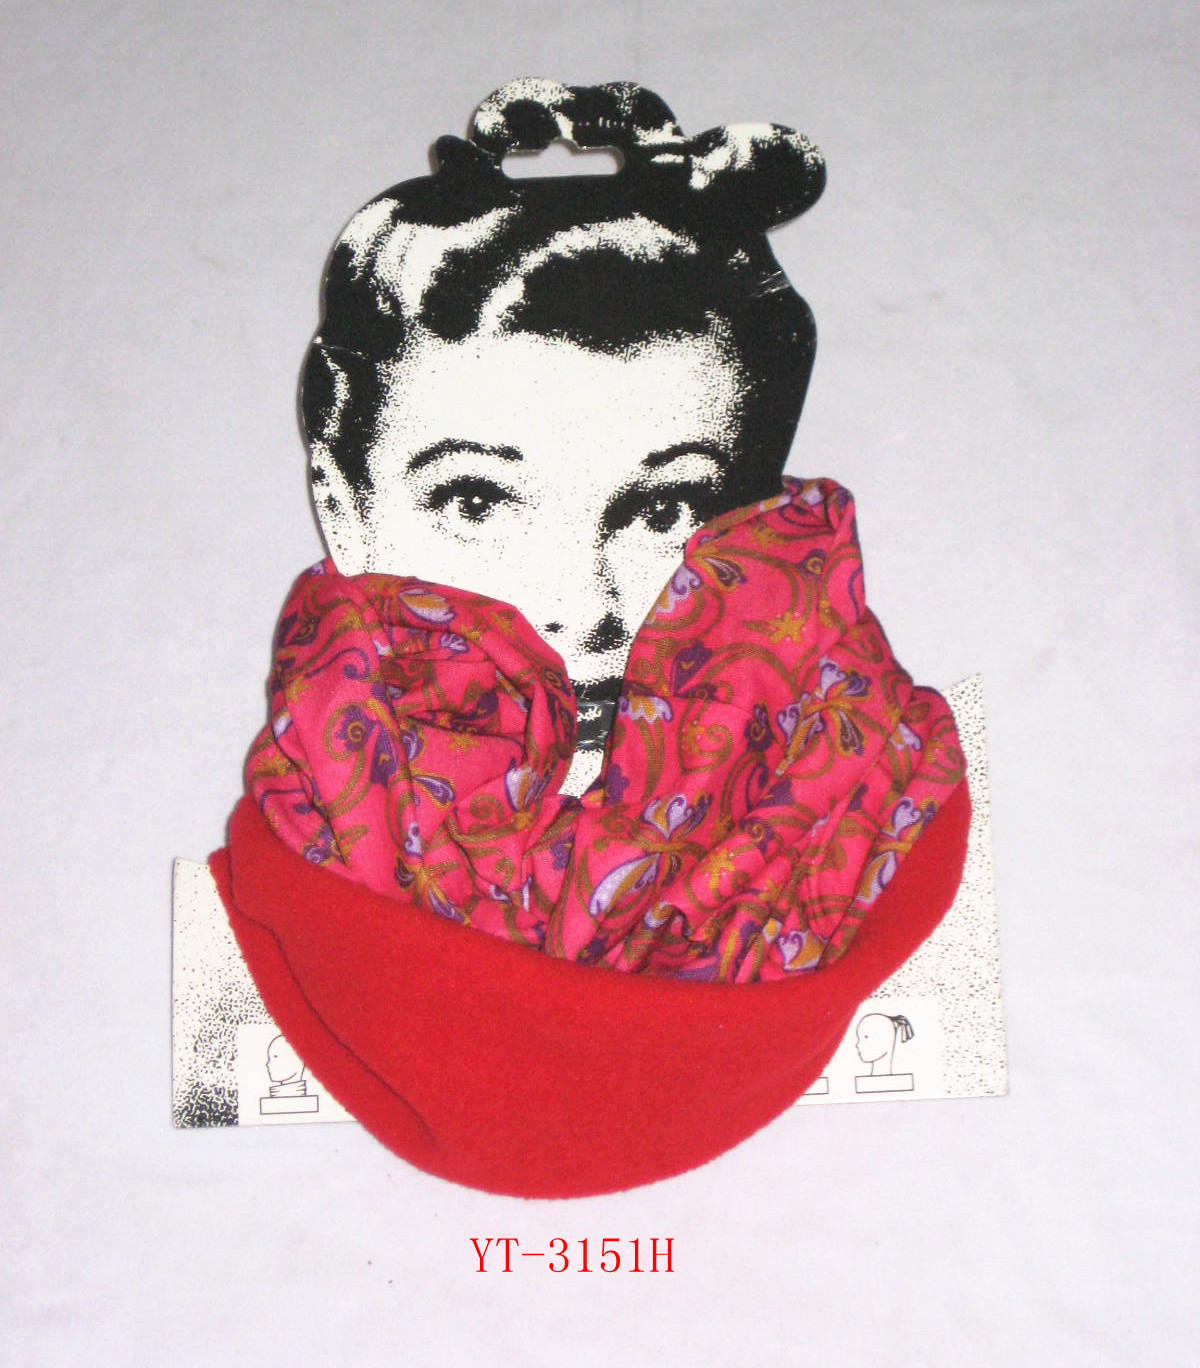 Neck Warmer in Polyester + Fleece Material with Your Design (YT-3151)